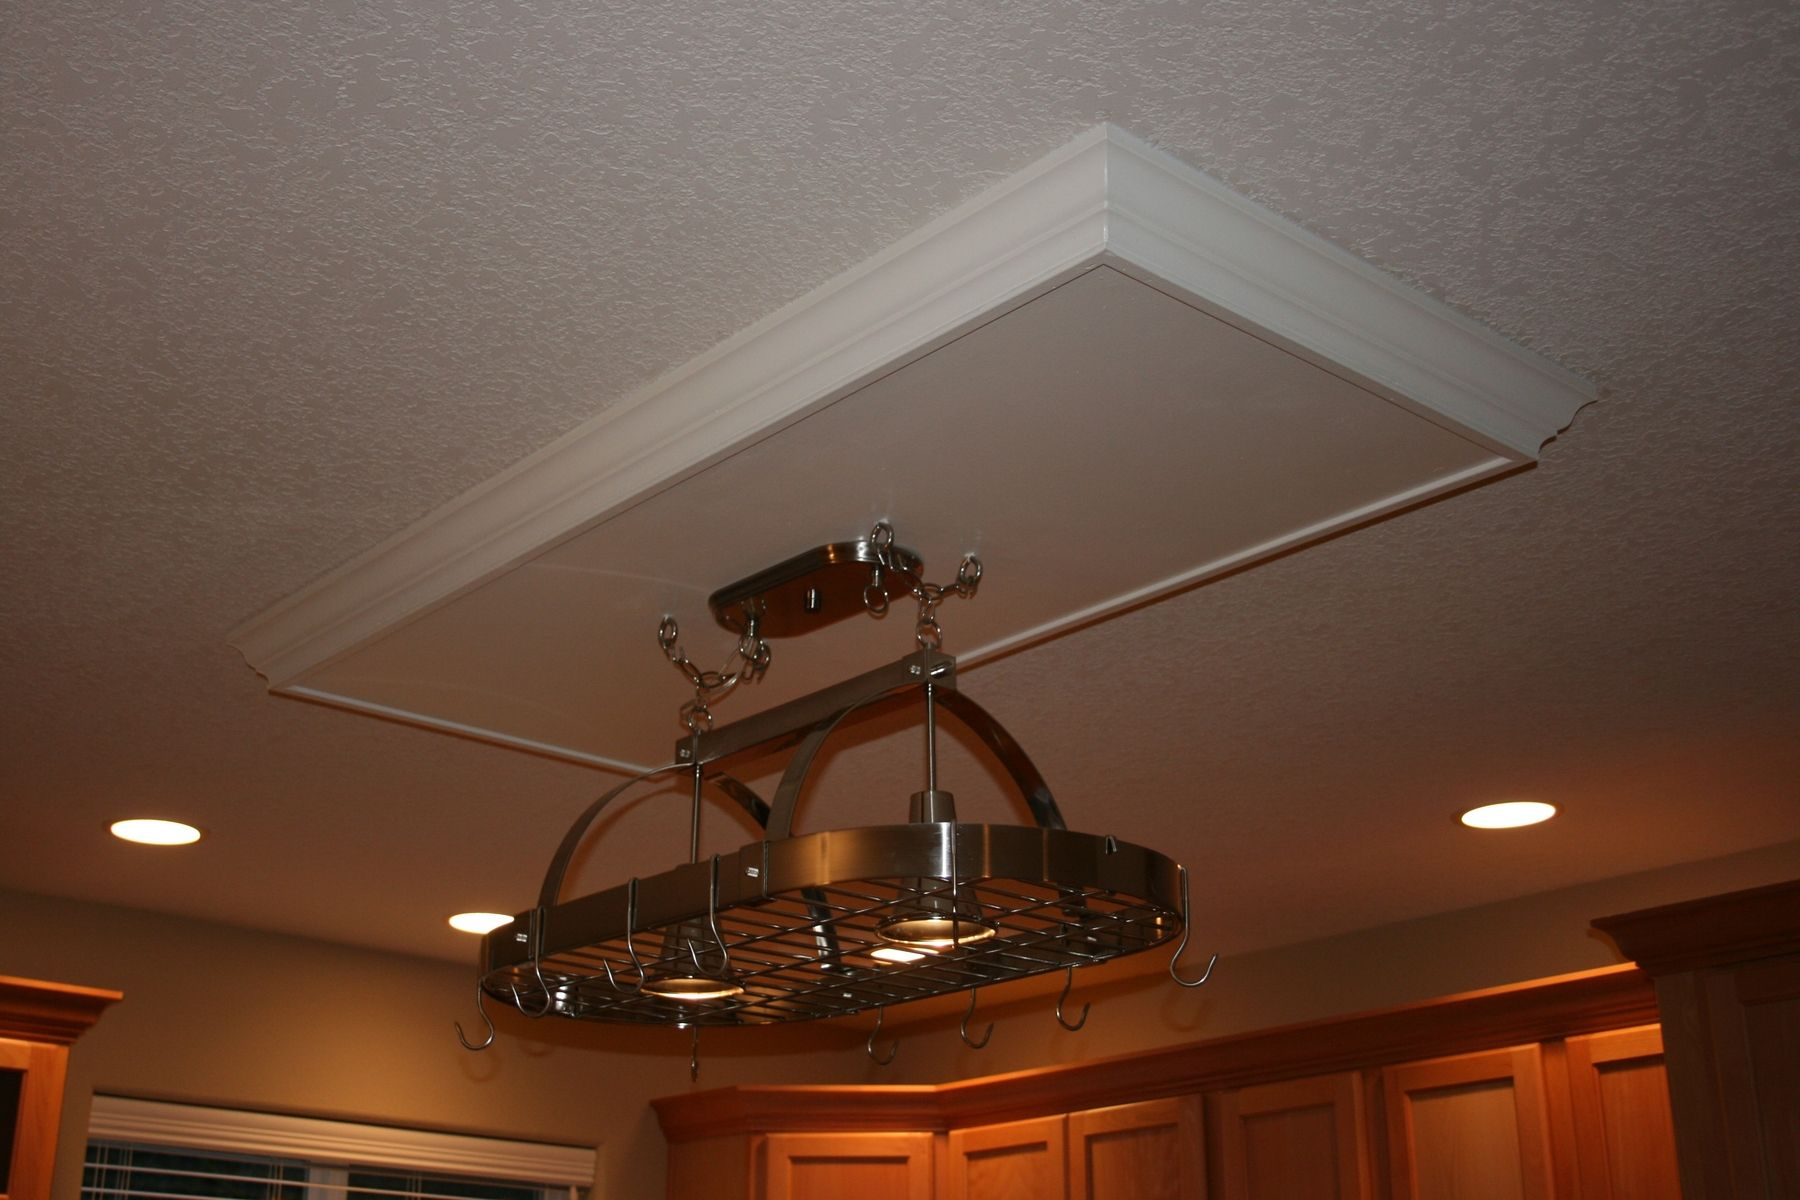 Hanging Drop Lights Handmade Drop Ceiling With Hanging Pot Rack By Charles